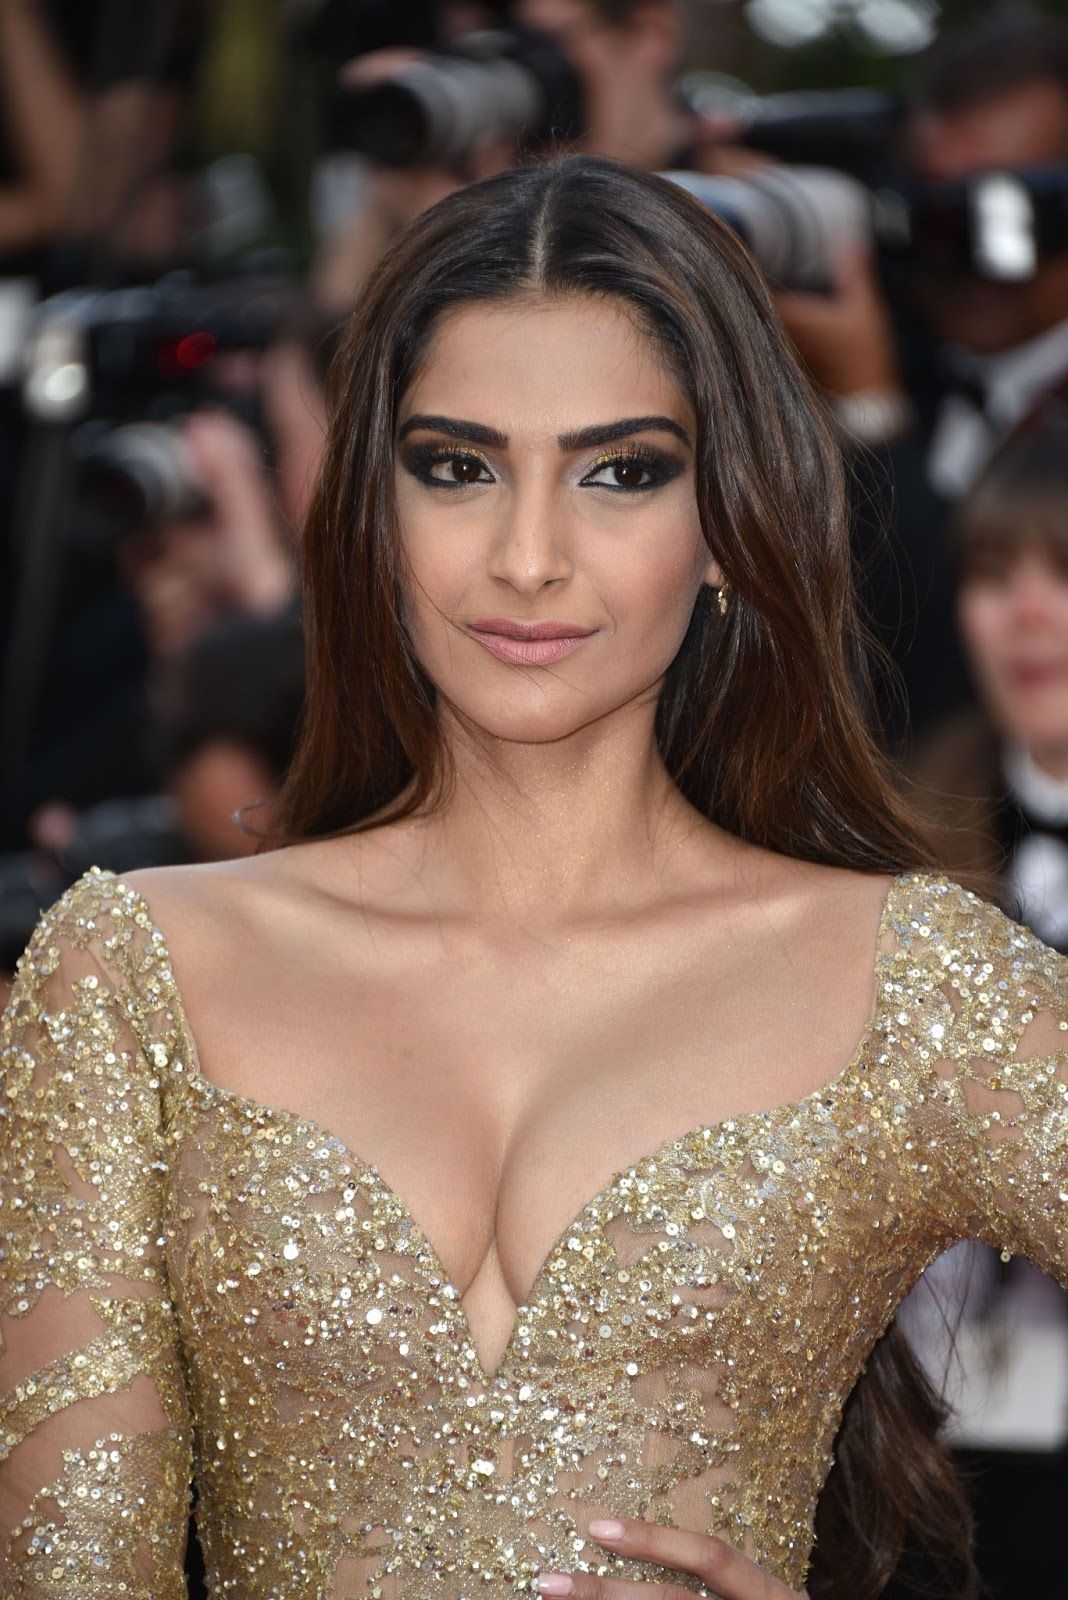 Cleavage Sonam Kapoor nude (87 photos), Sideboobs